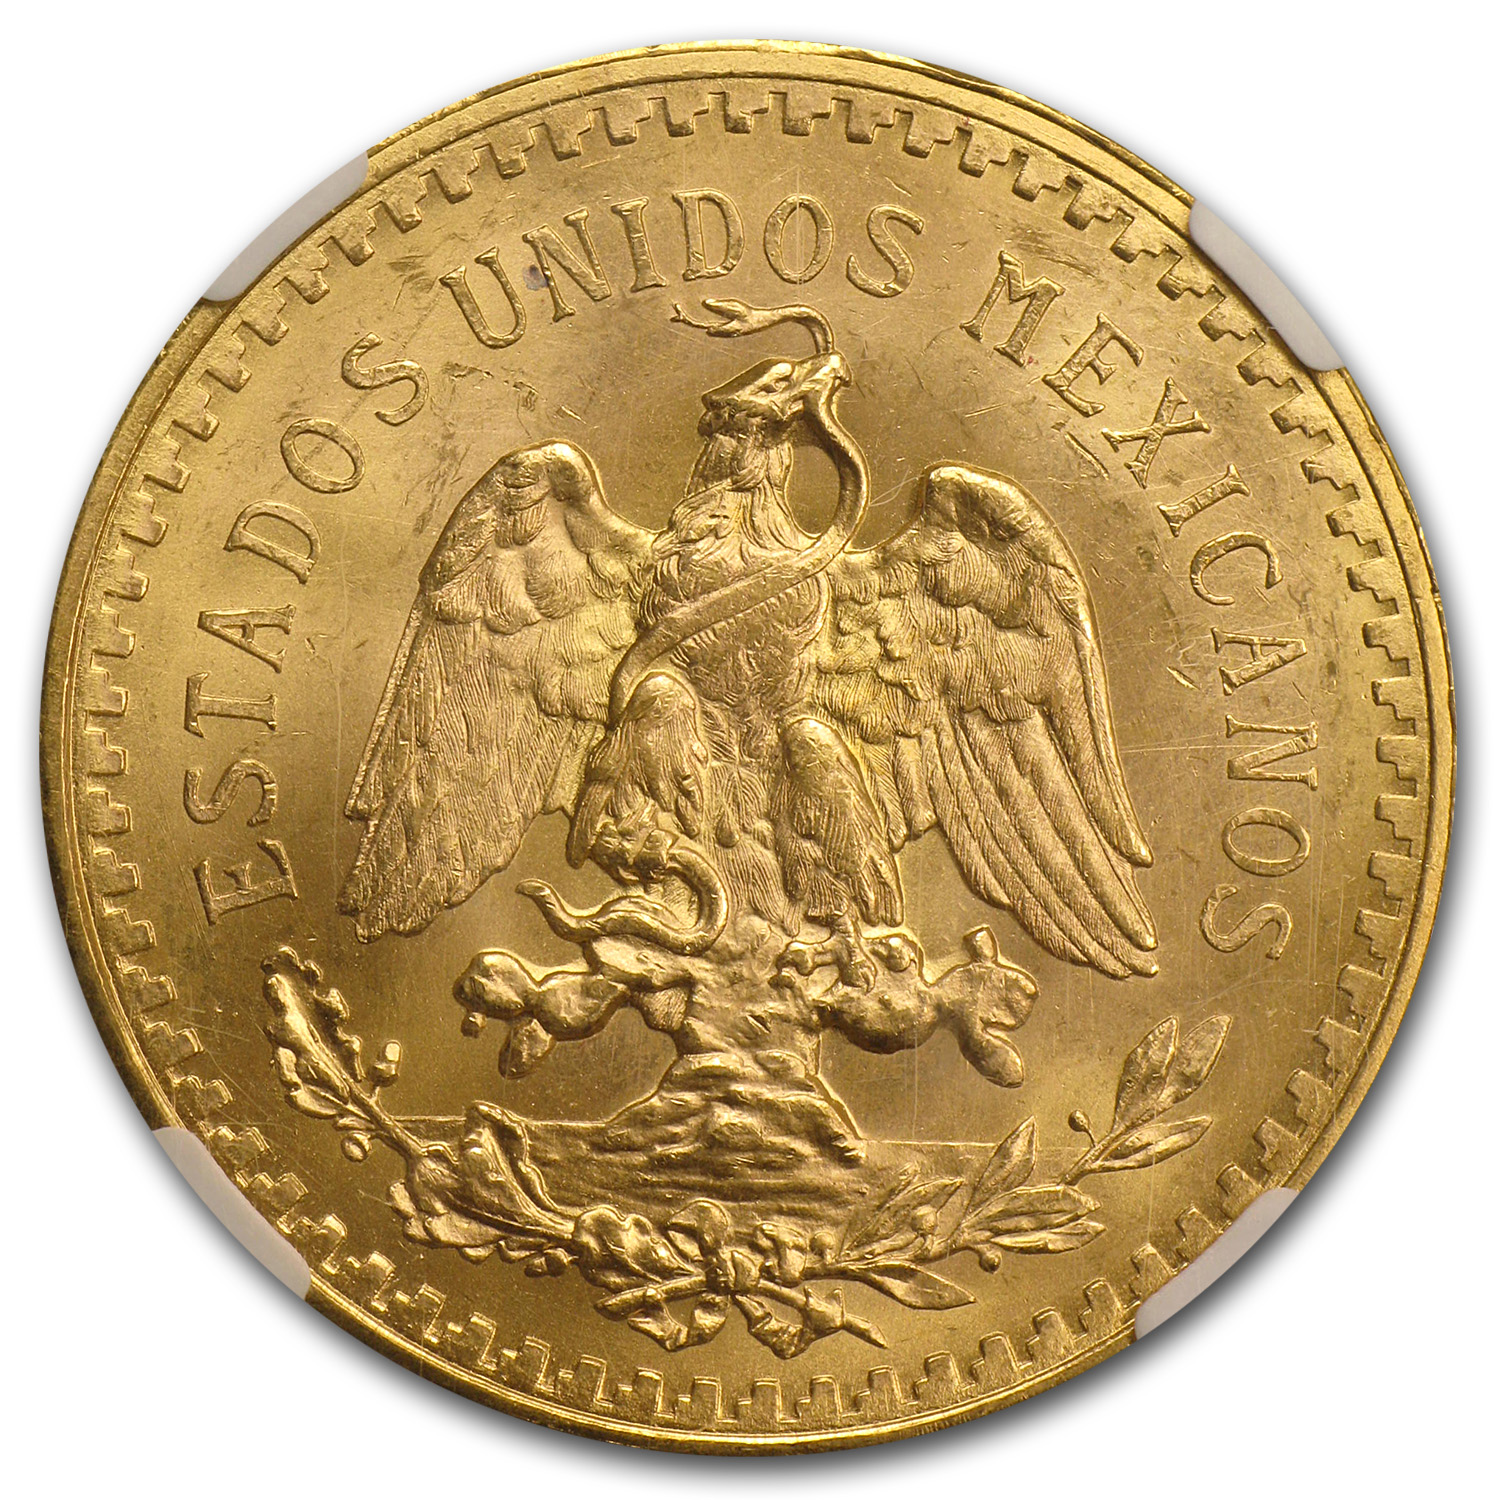 Mexico 1931 50 Pesos Gold Coin - MS-64 NGC